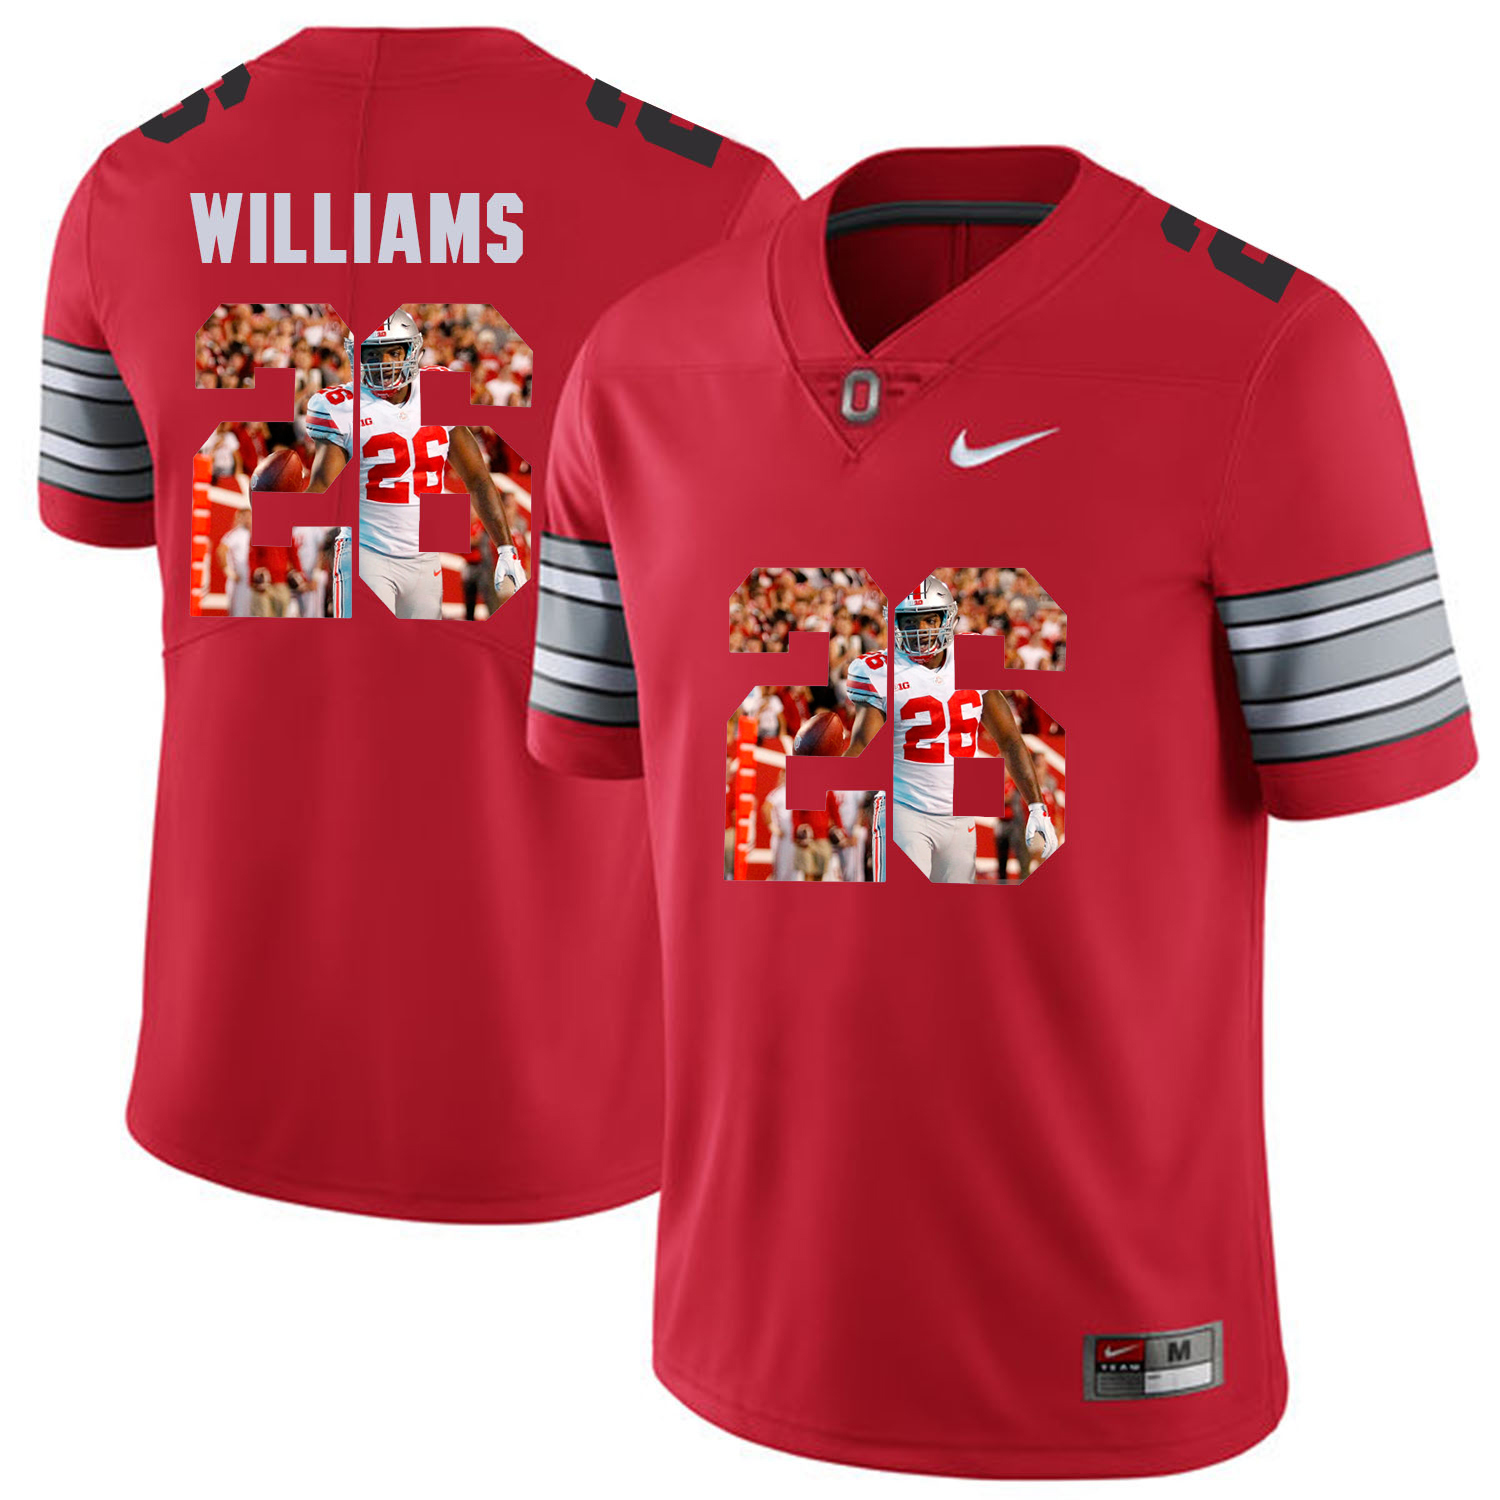 Men Ohio State 26 Williams Red Fashion Edition Customized NCAA Jerseys